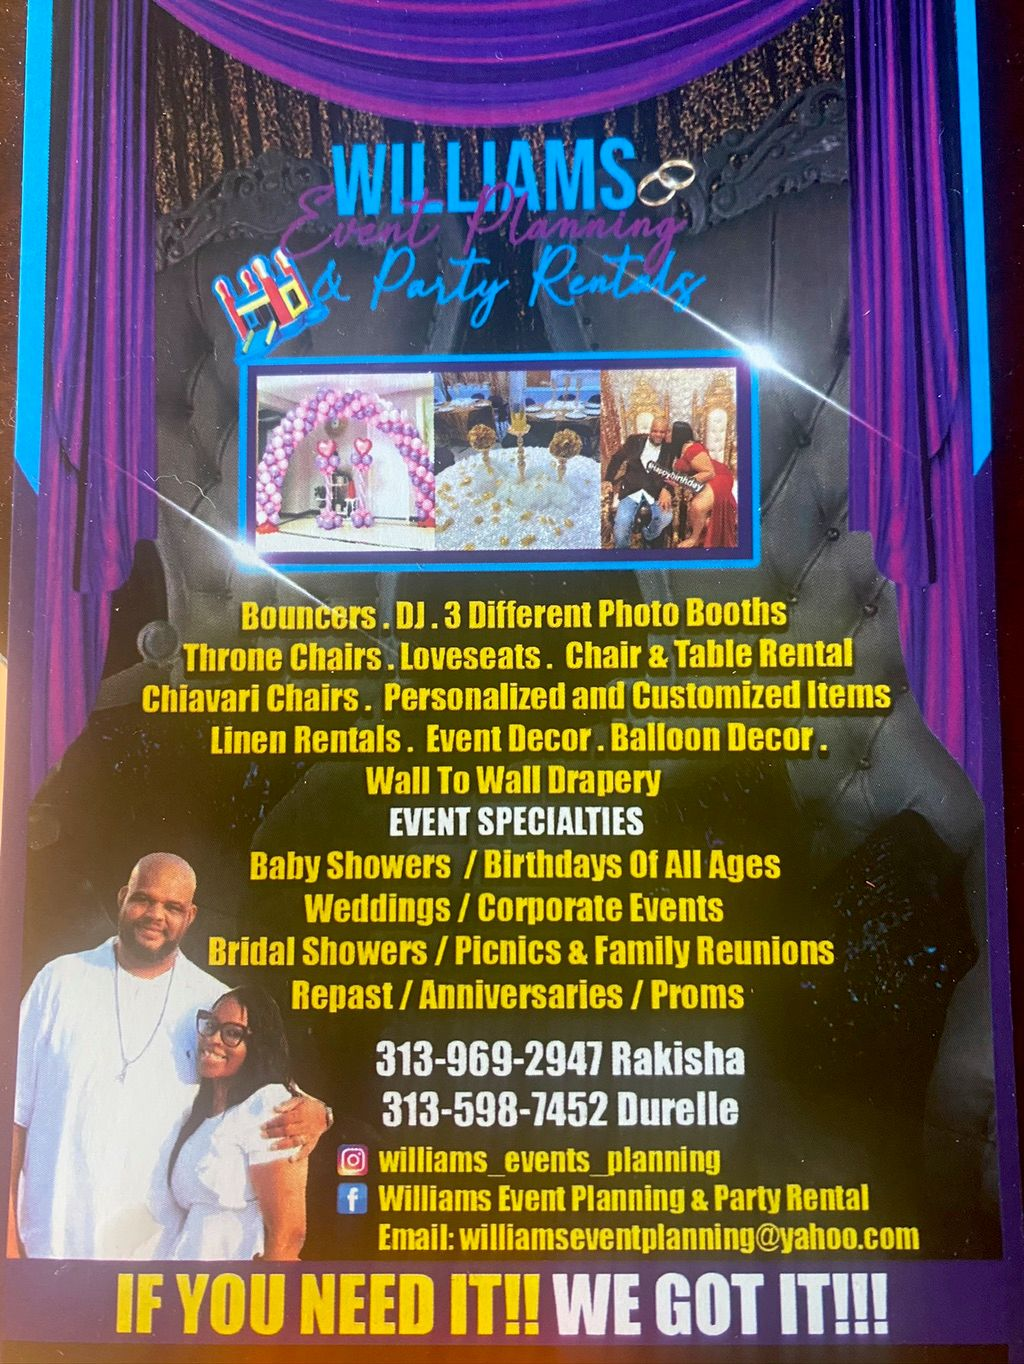 Williams Event Planning & Party Rentals